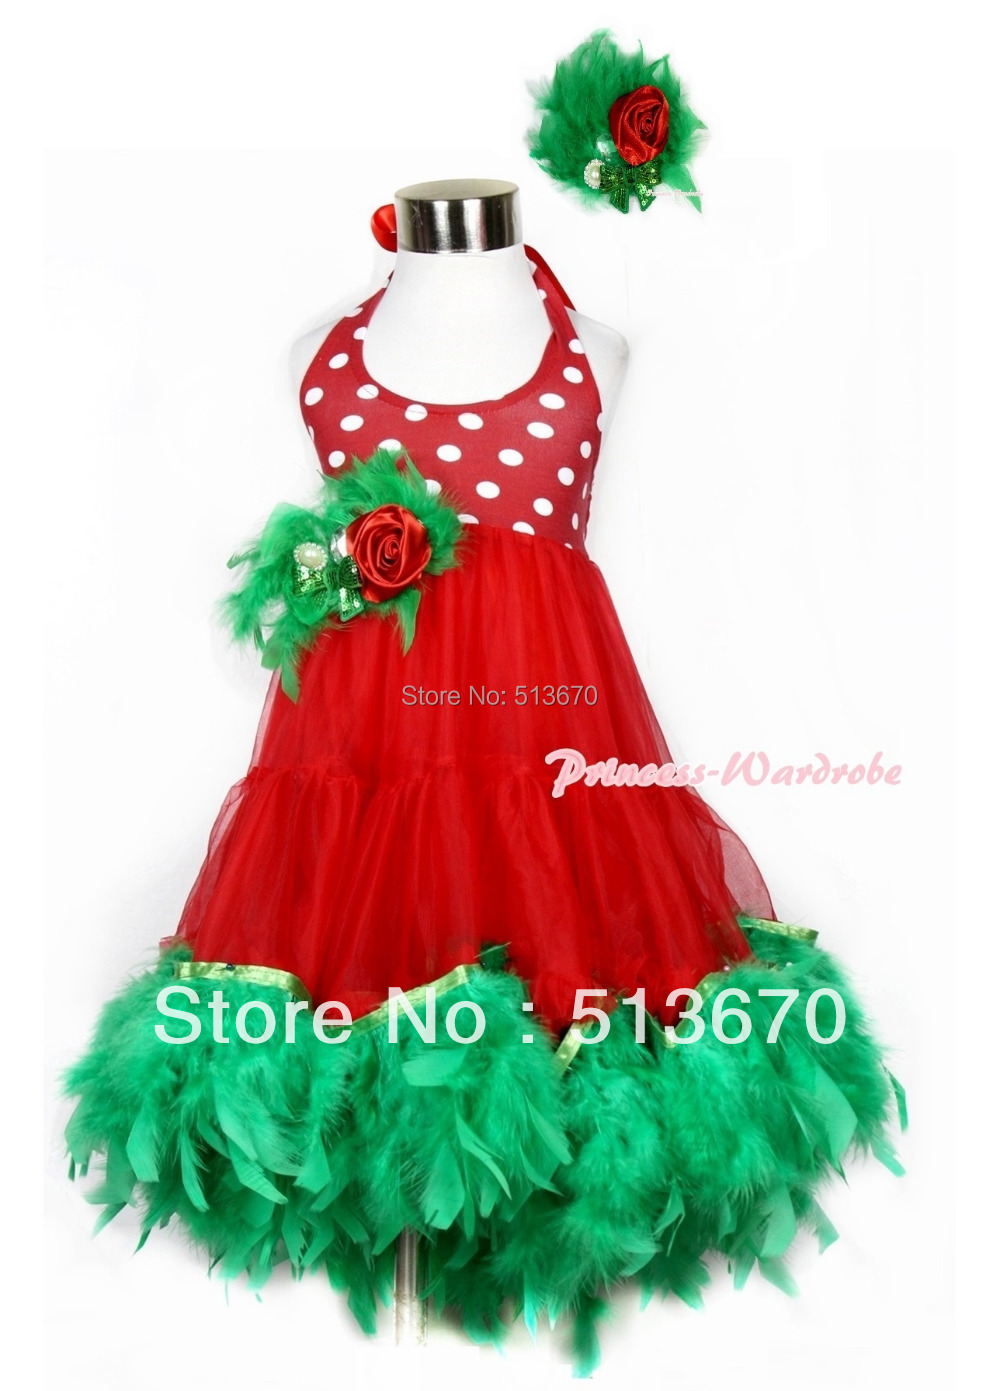 Xmas Red White Polka Dots ONE-PIECE Petti Dress Kelly Green Posh Feather & Green Feather Bow With Accessory 2PC Set MALP26-1 карнавальные аксессуары новогодняя ярмарка колпак новогодний